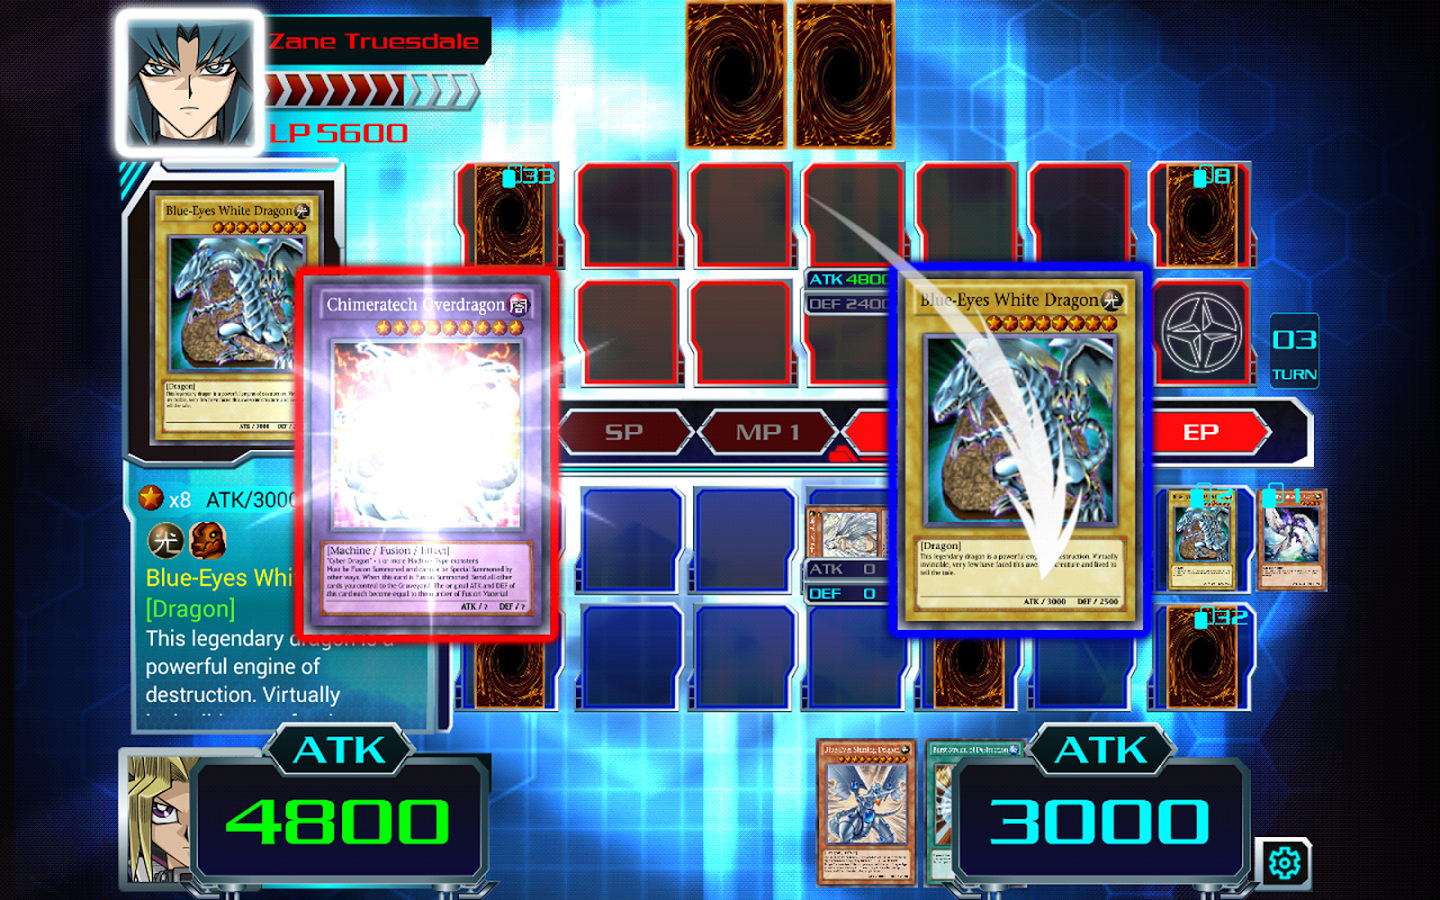 Yu Gi Oh Duel Generation Mod Apk Unlimited Ygo Points Maxtron Amor Android Jelly Bean Bbm Stylish And Slim Design